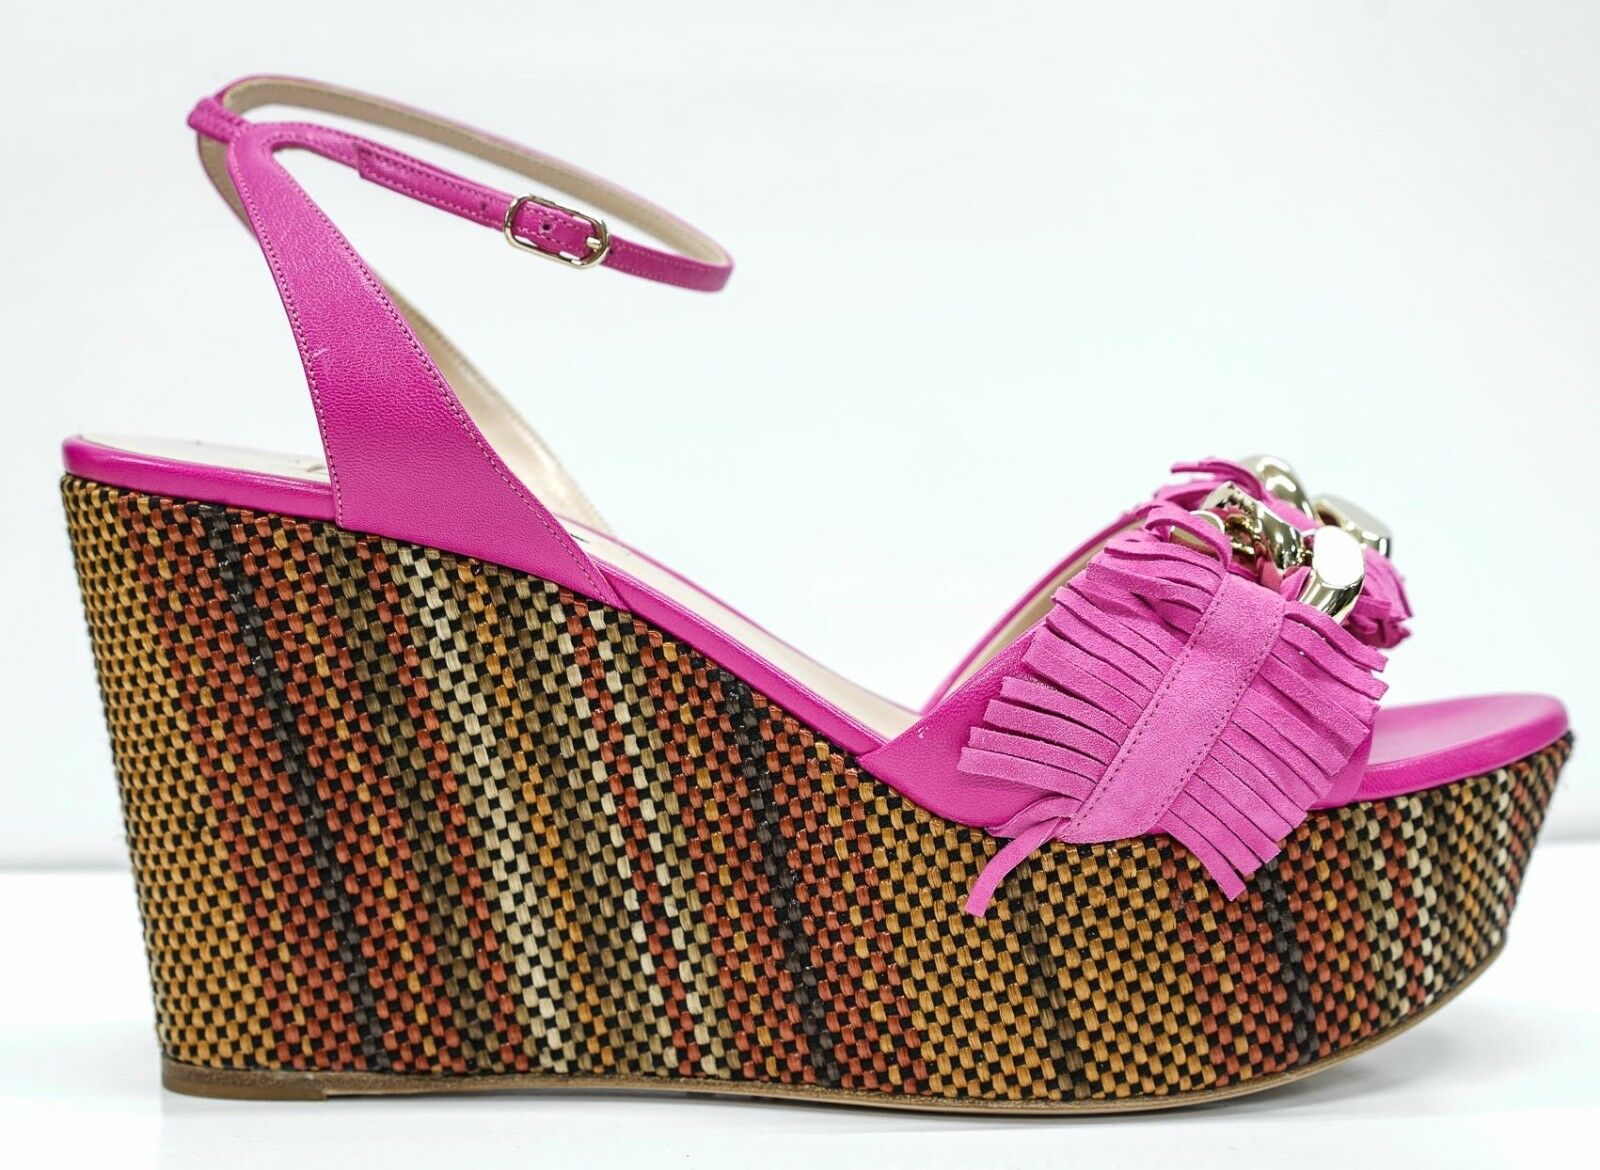 New in Box Casadei Ladies Pink and gold Wedge 1L479G